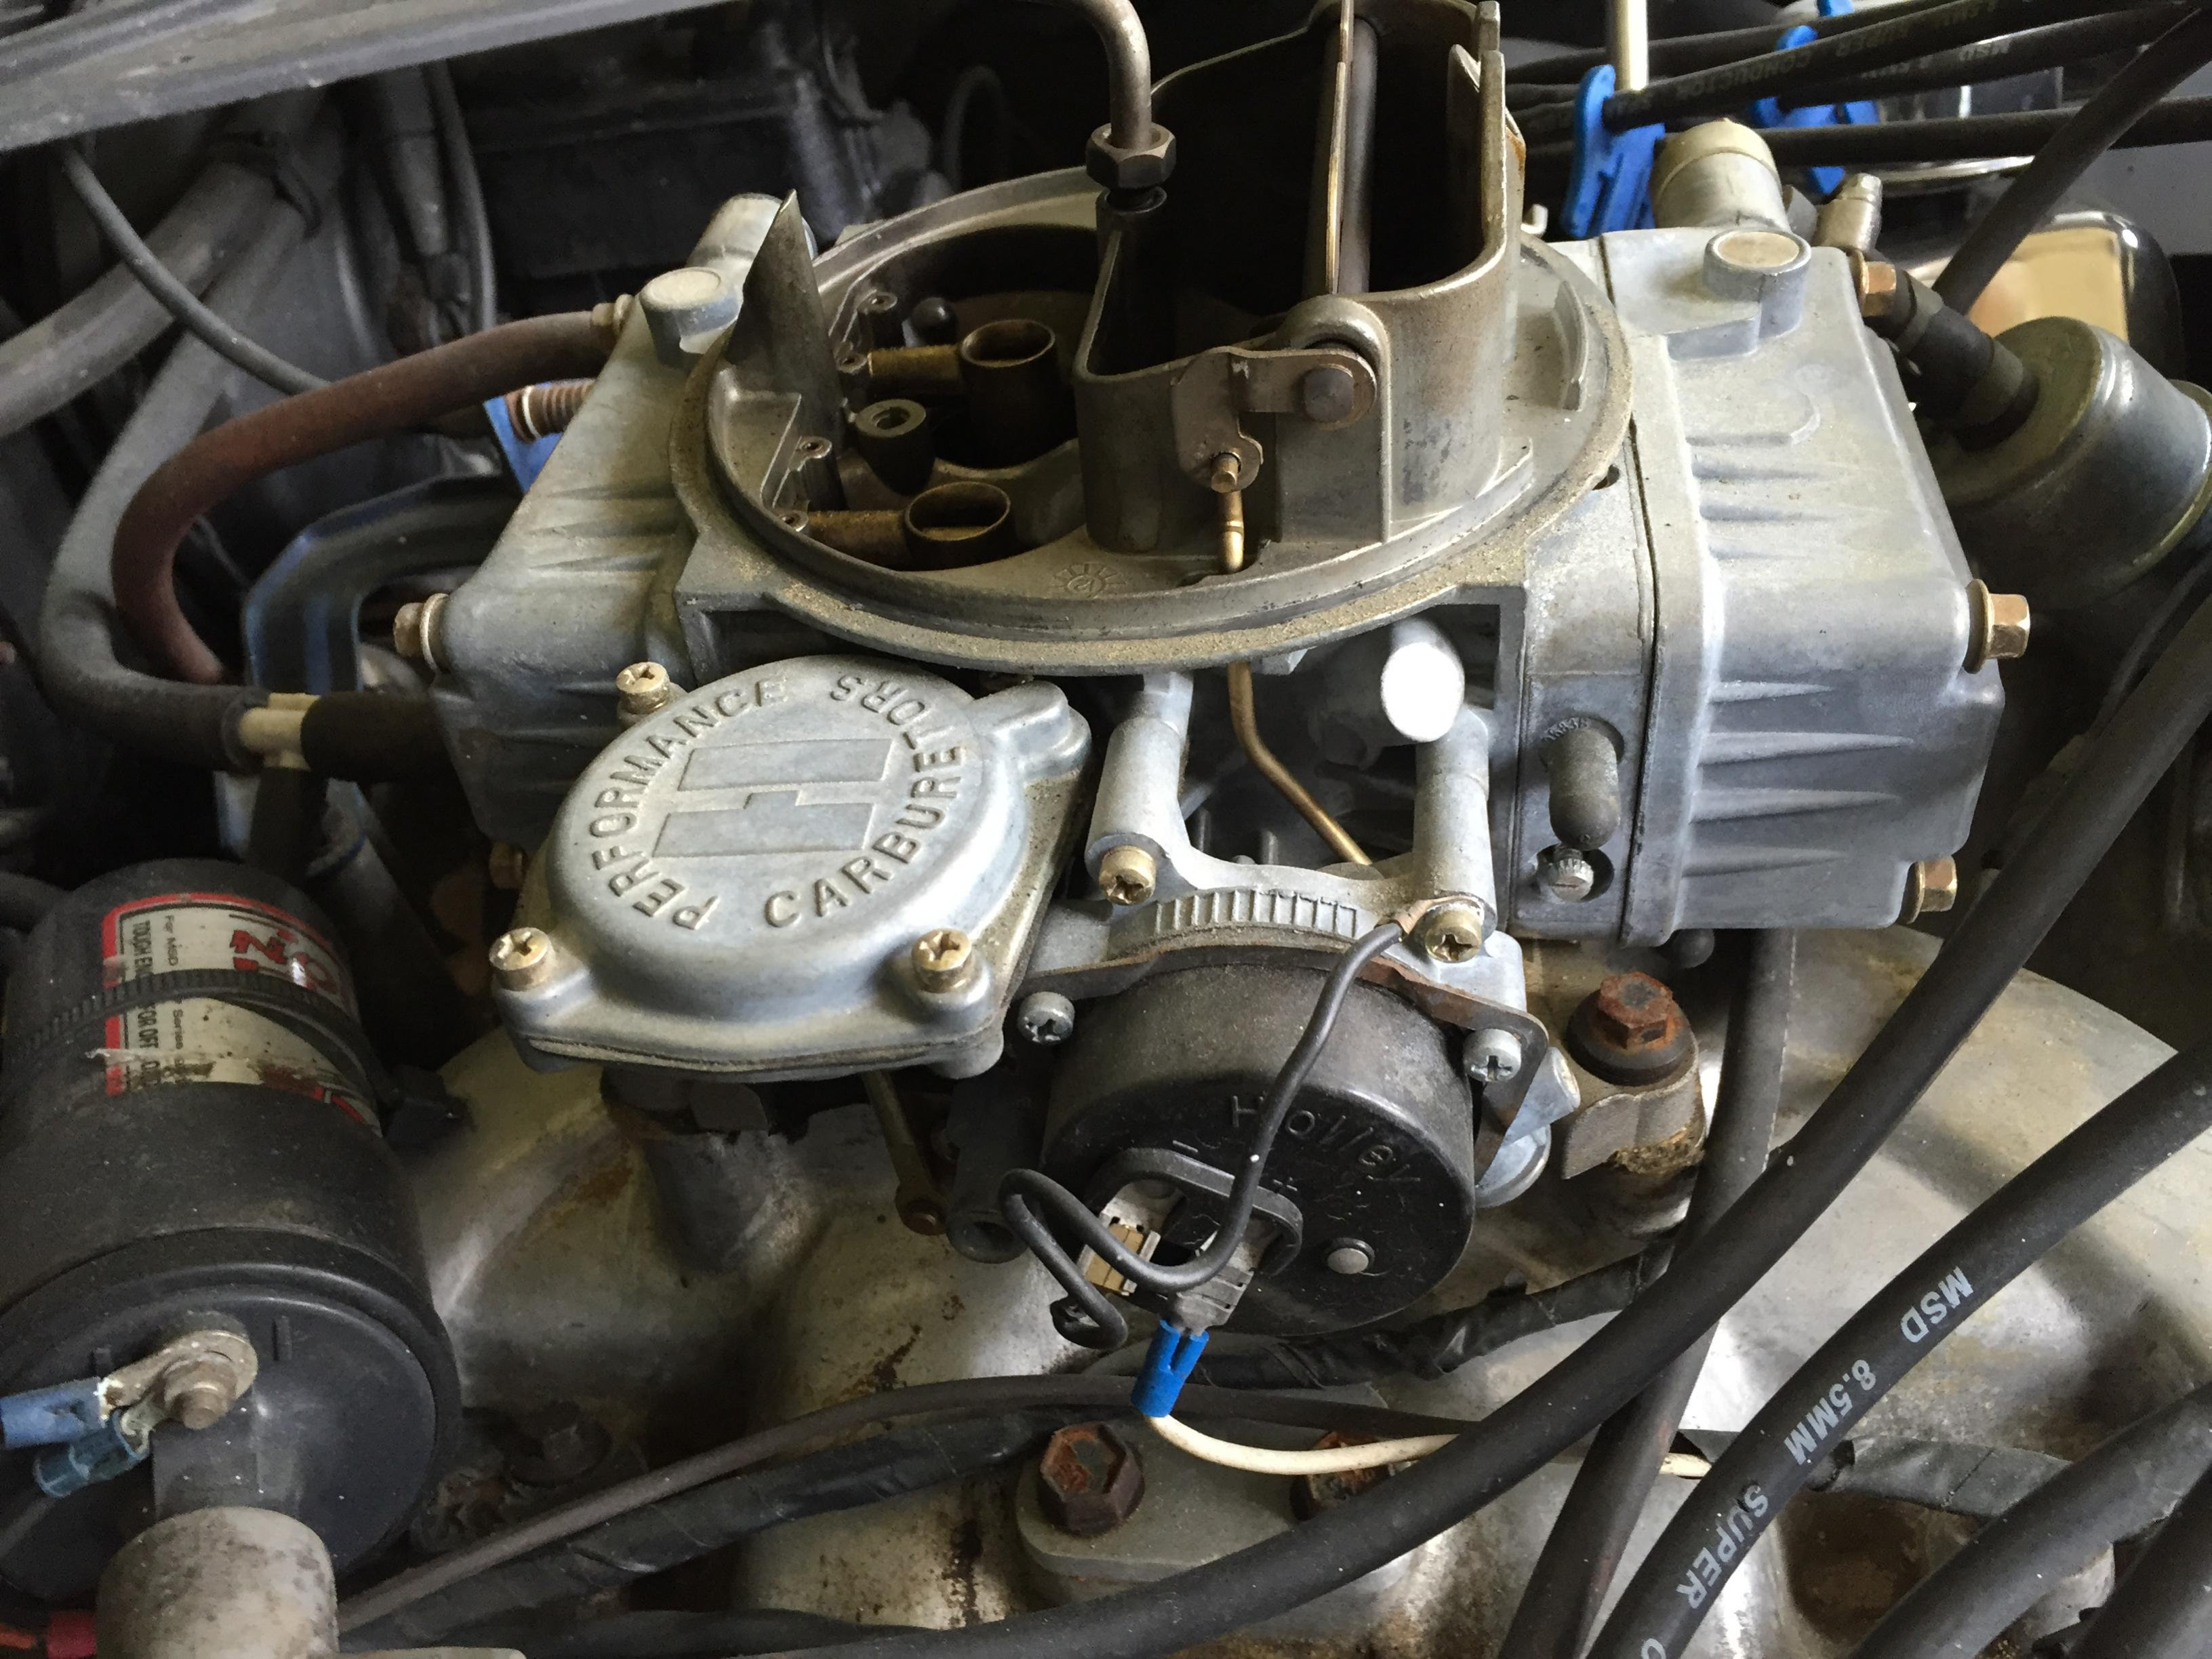 Ford Mustang Parts >> Replacing Carb on 351 Cleveland - Ford Mustang Forum